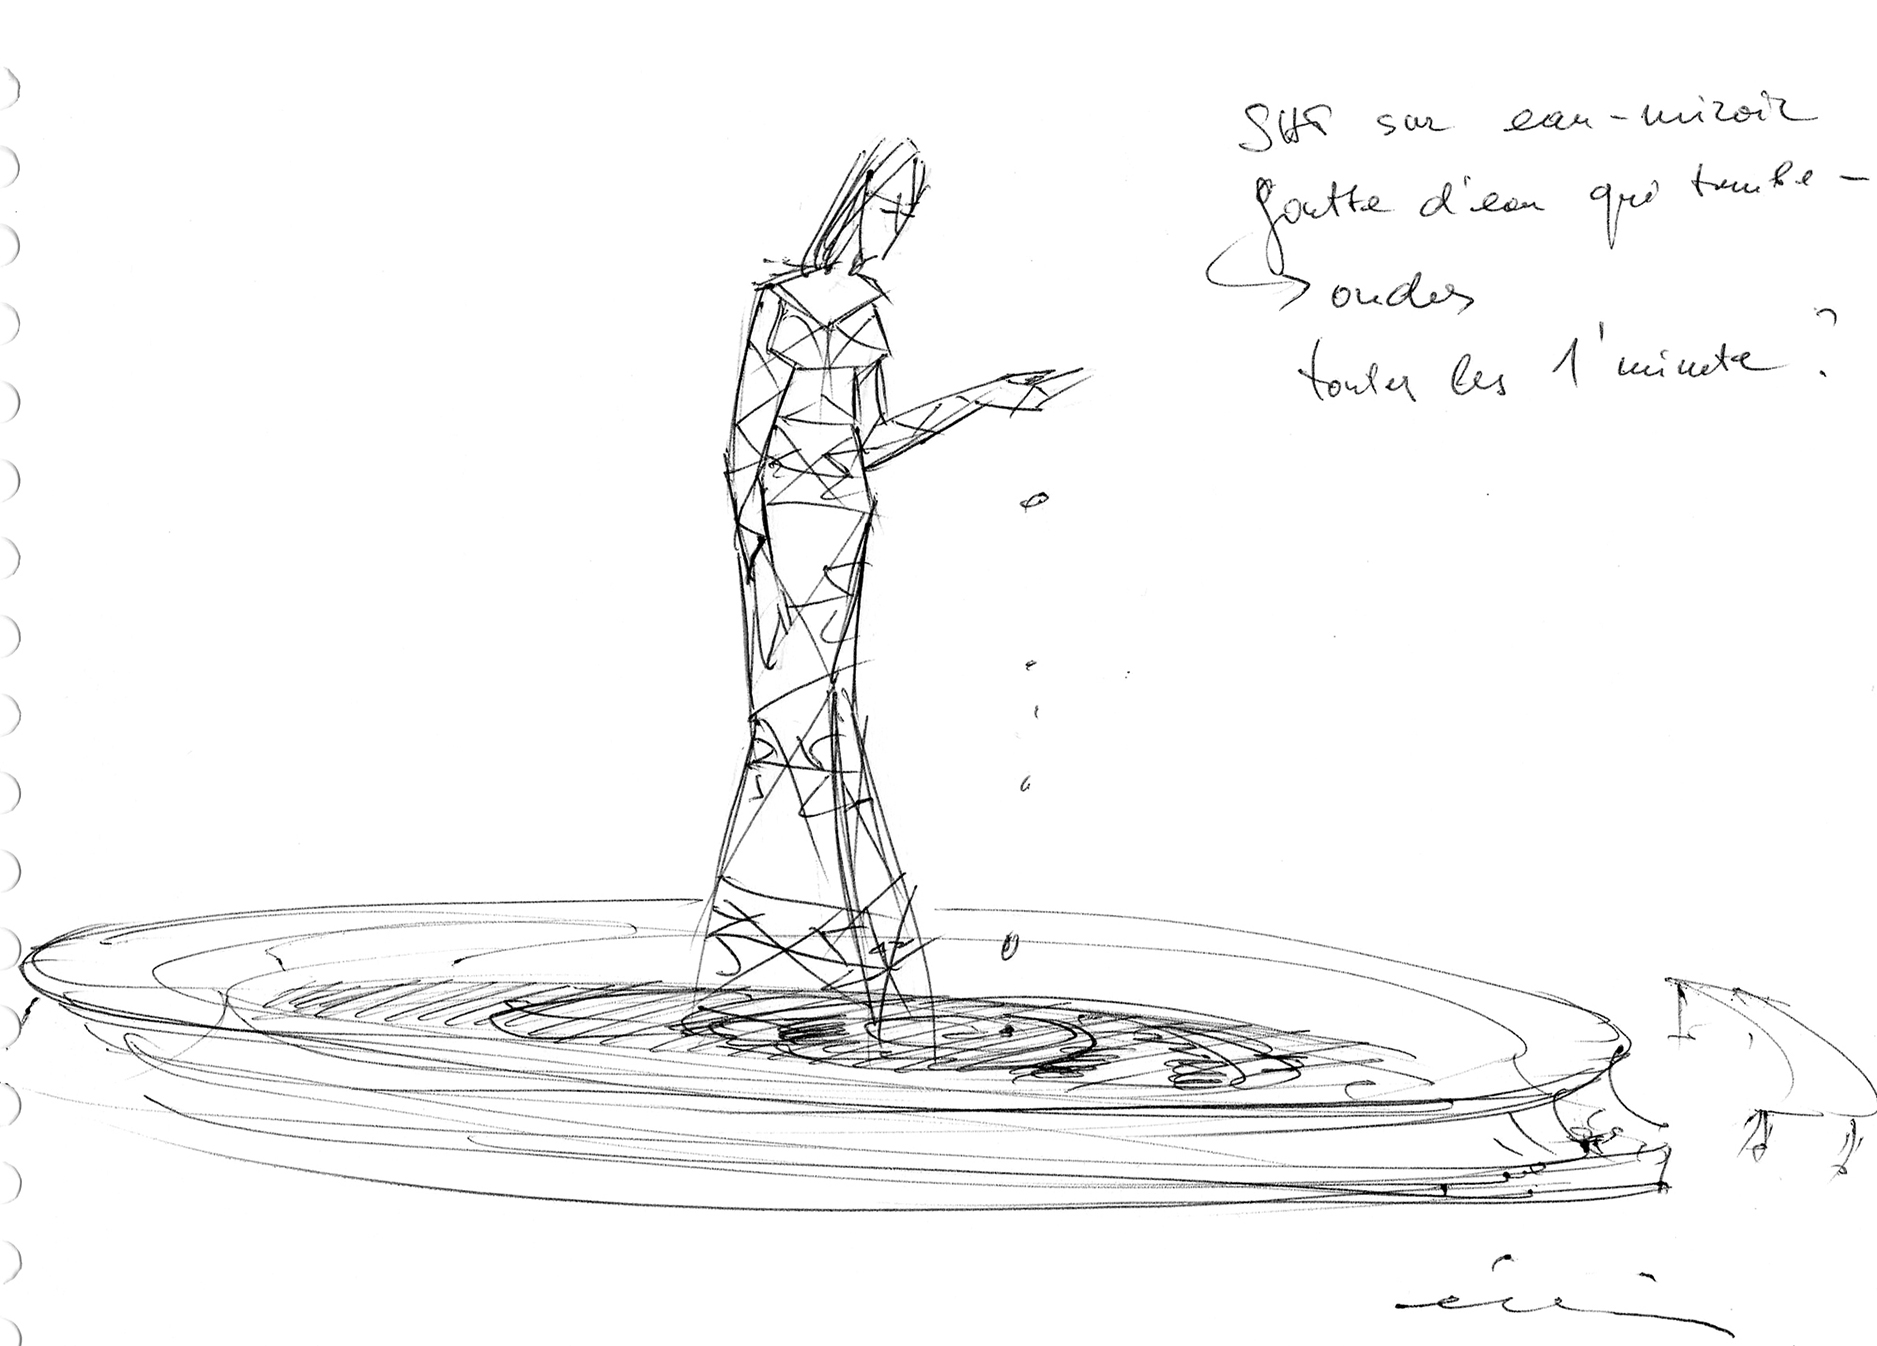 Ondine, project for a Pylon-Sculpture on a mirror of water